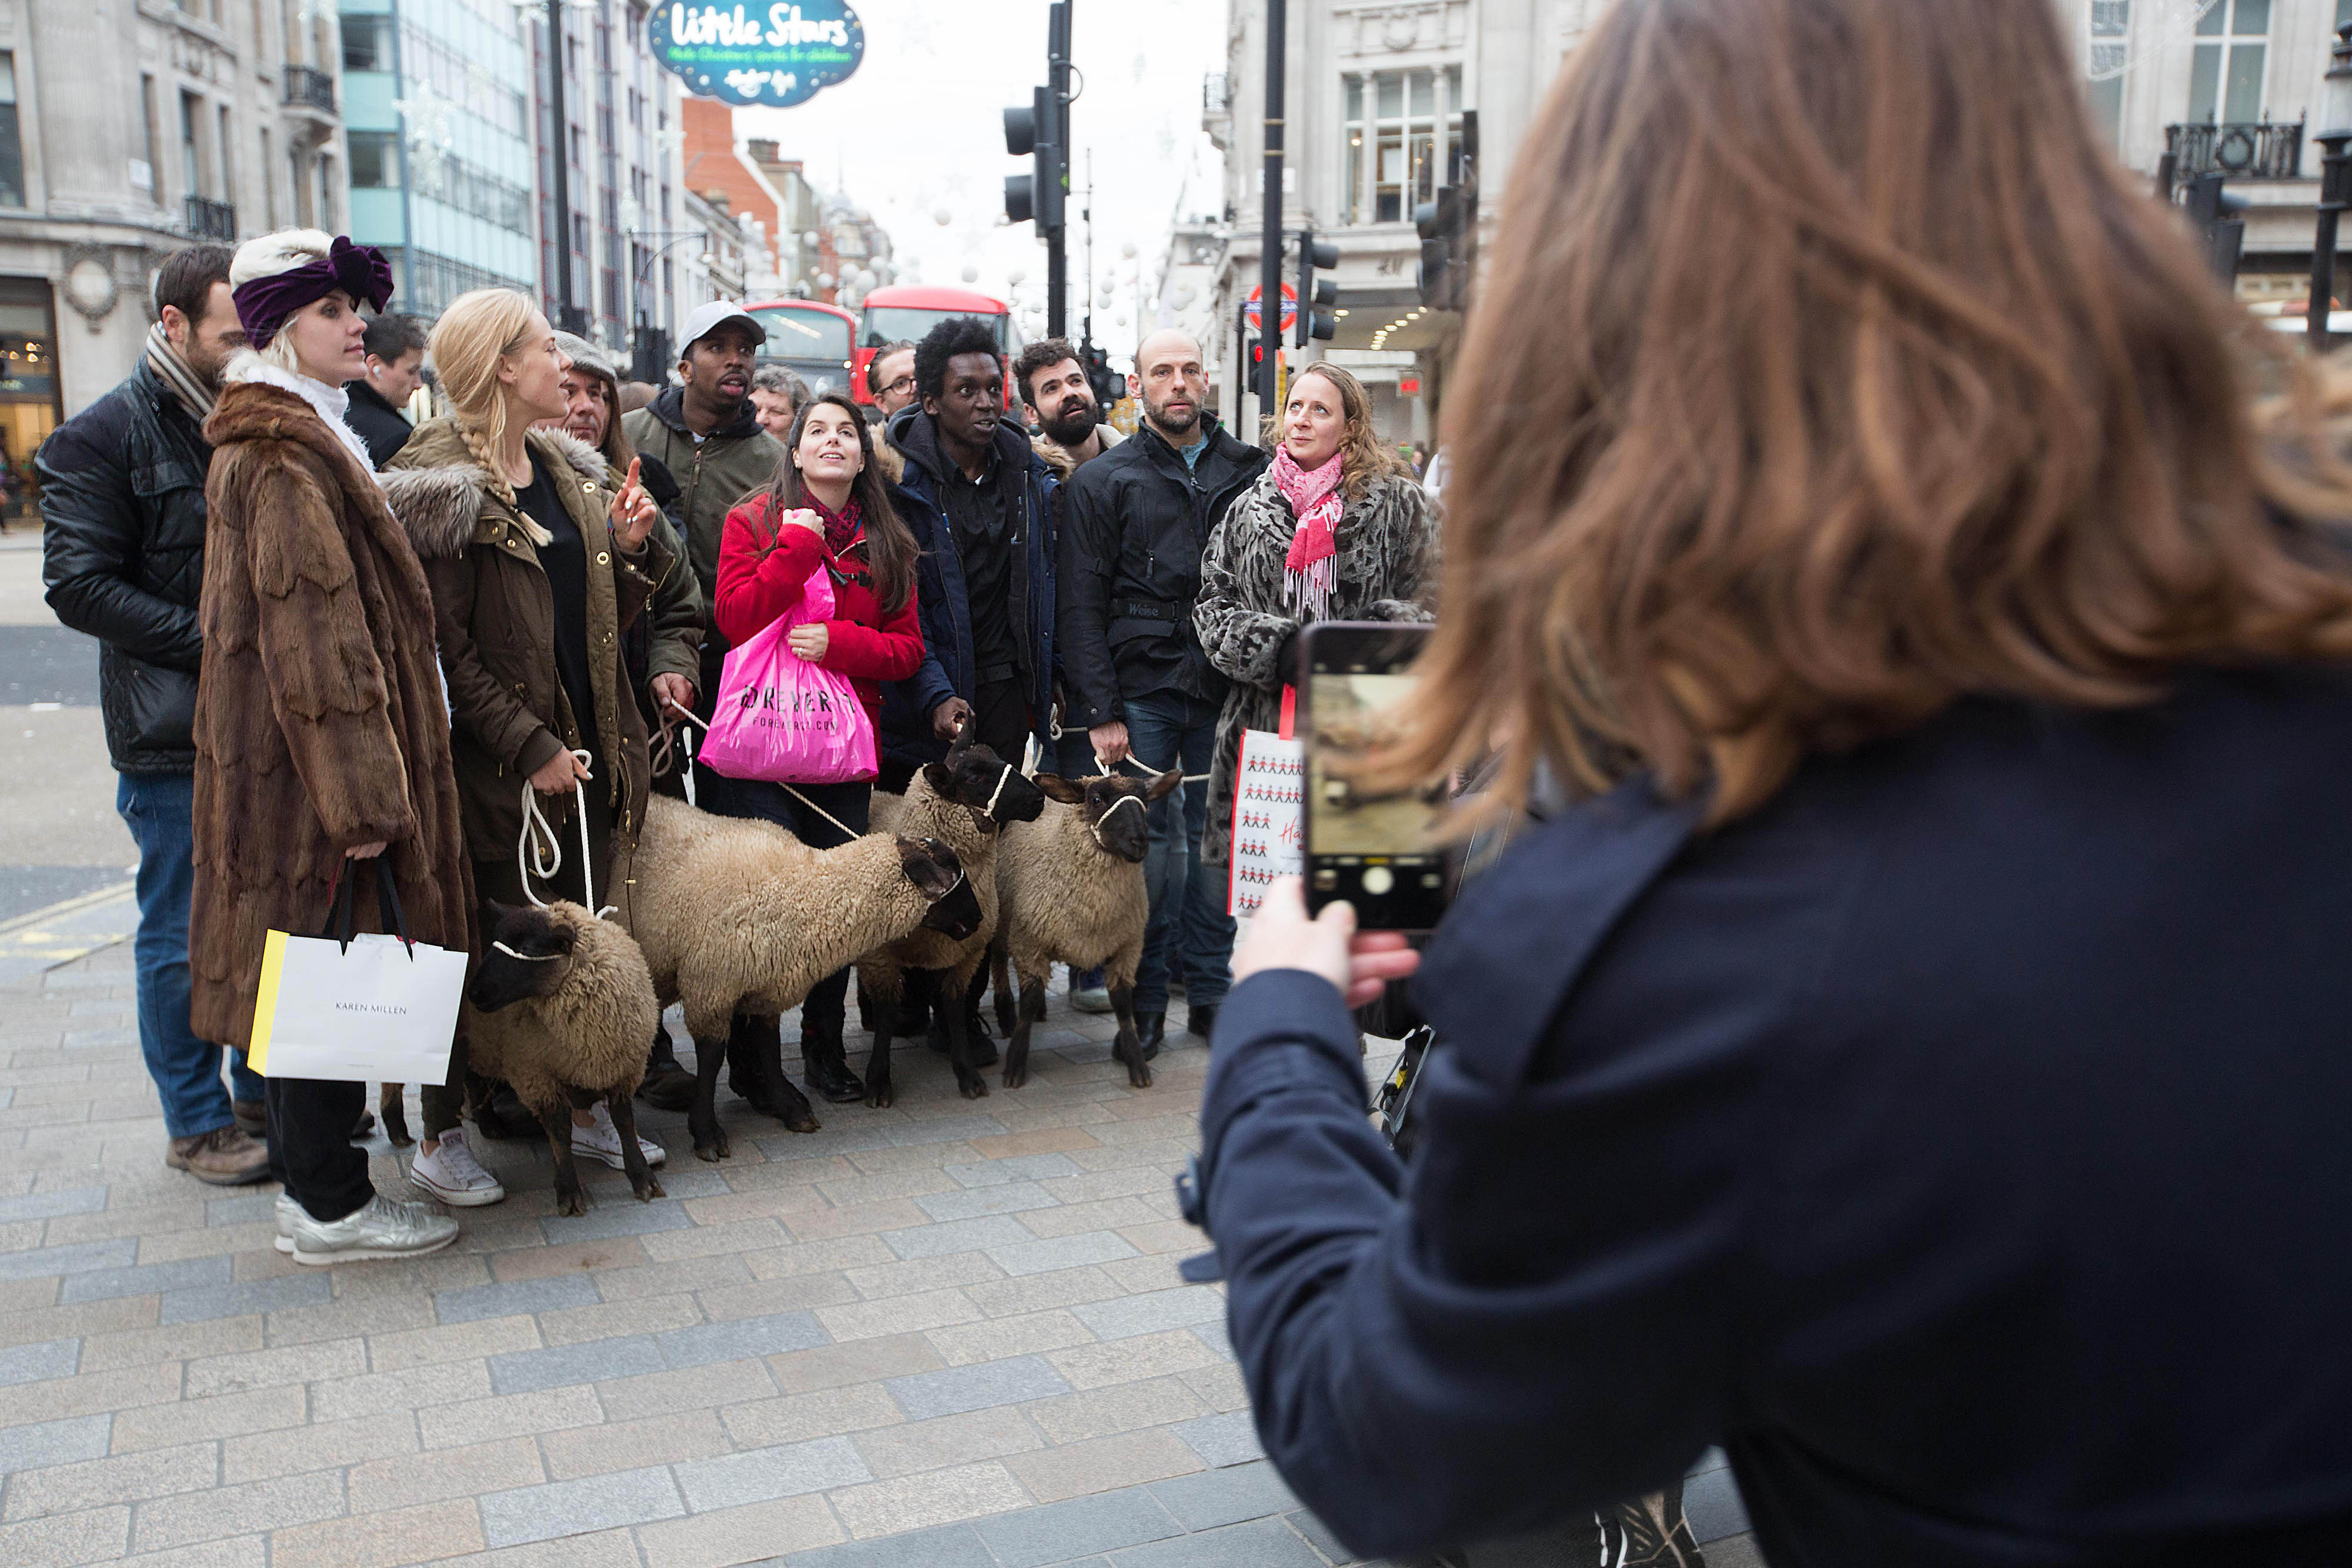 A lady in a dark blue overcoat captures a photograph on her phone of a group of people dressed as shoppers each holding a woolly sheep on a rope huddled together at London's Oxford Circus.